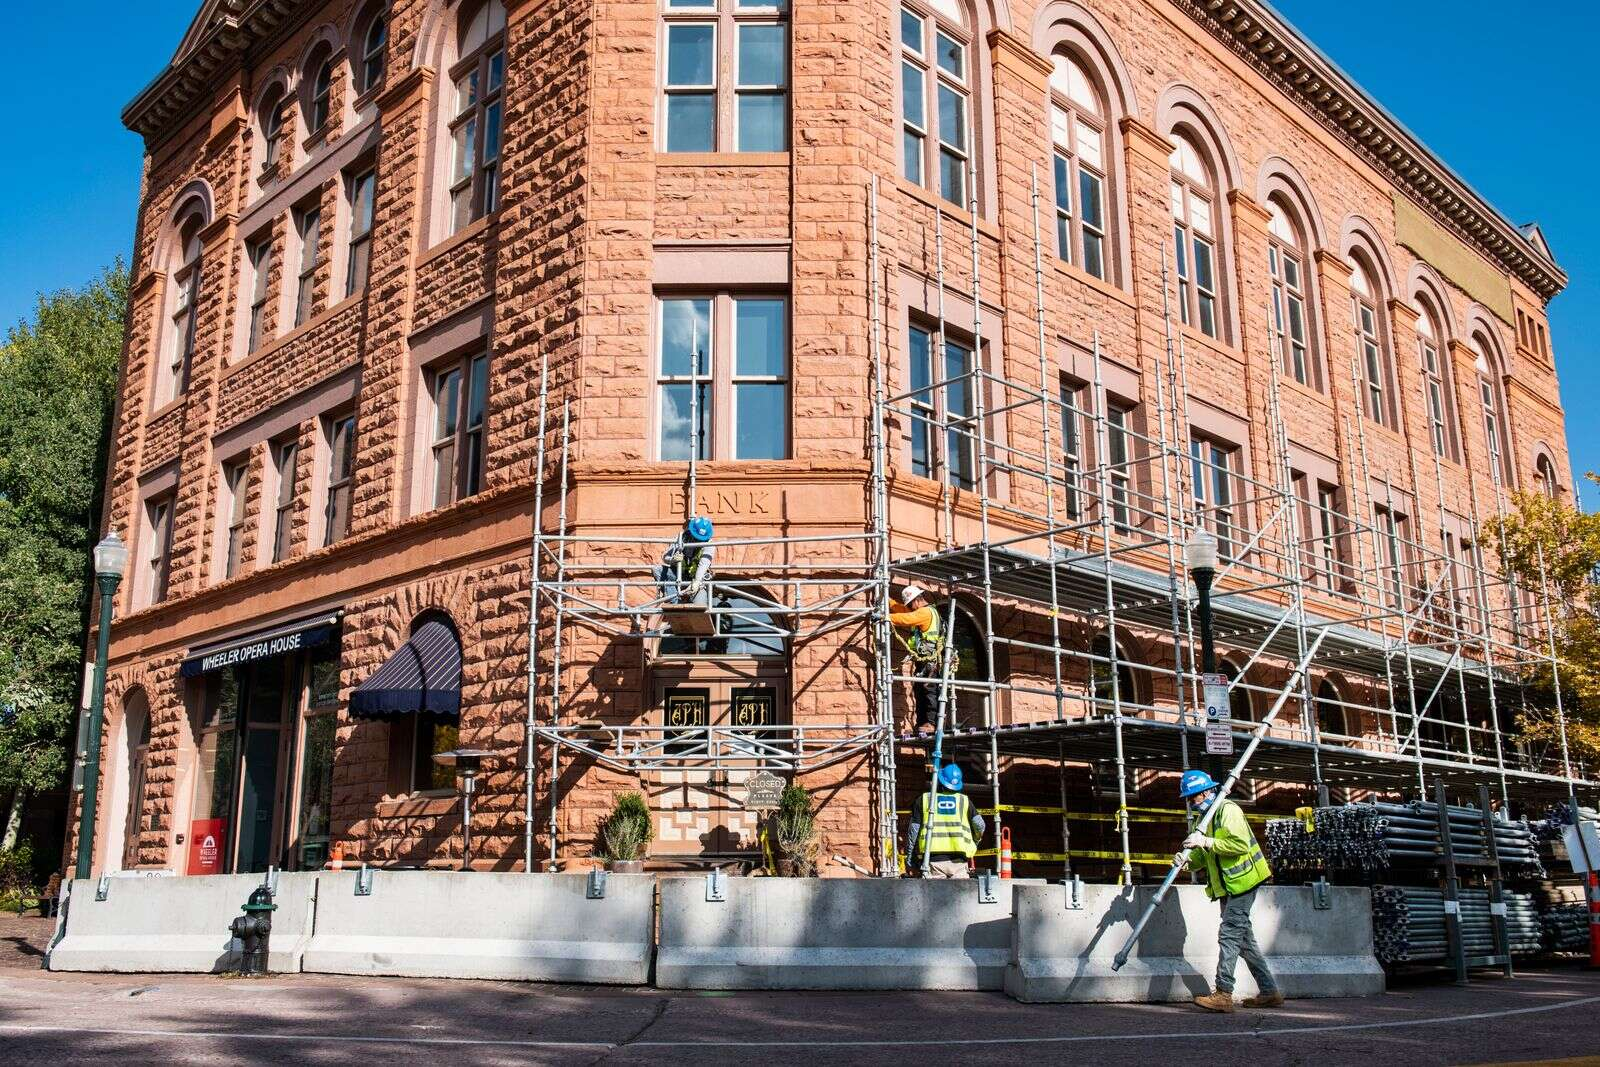 Workers install scaffolding around the Wheeler Opera House building for their restoration project in Aspen on Tuesday, Sept. 22, 2020.